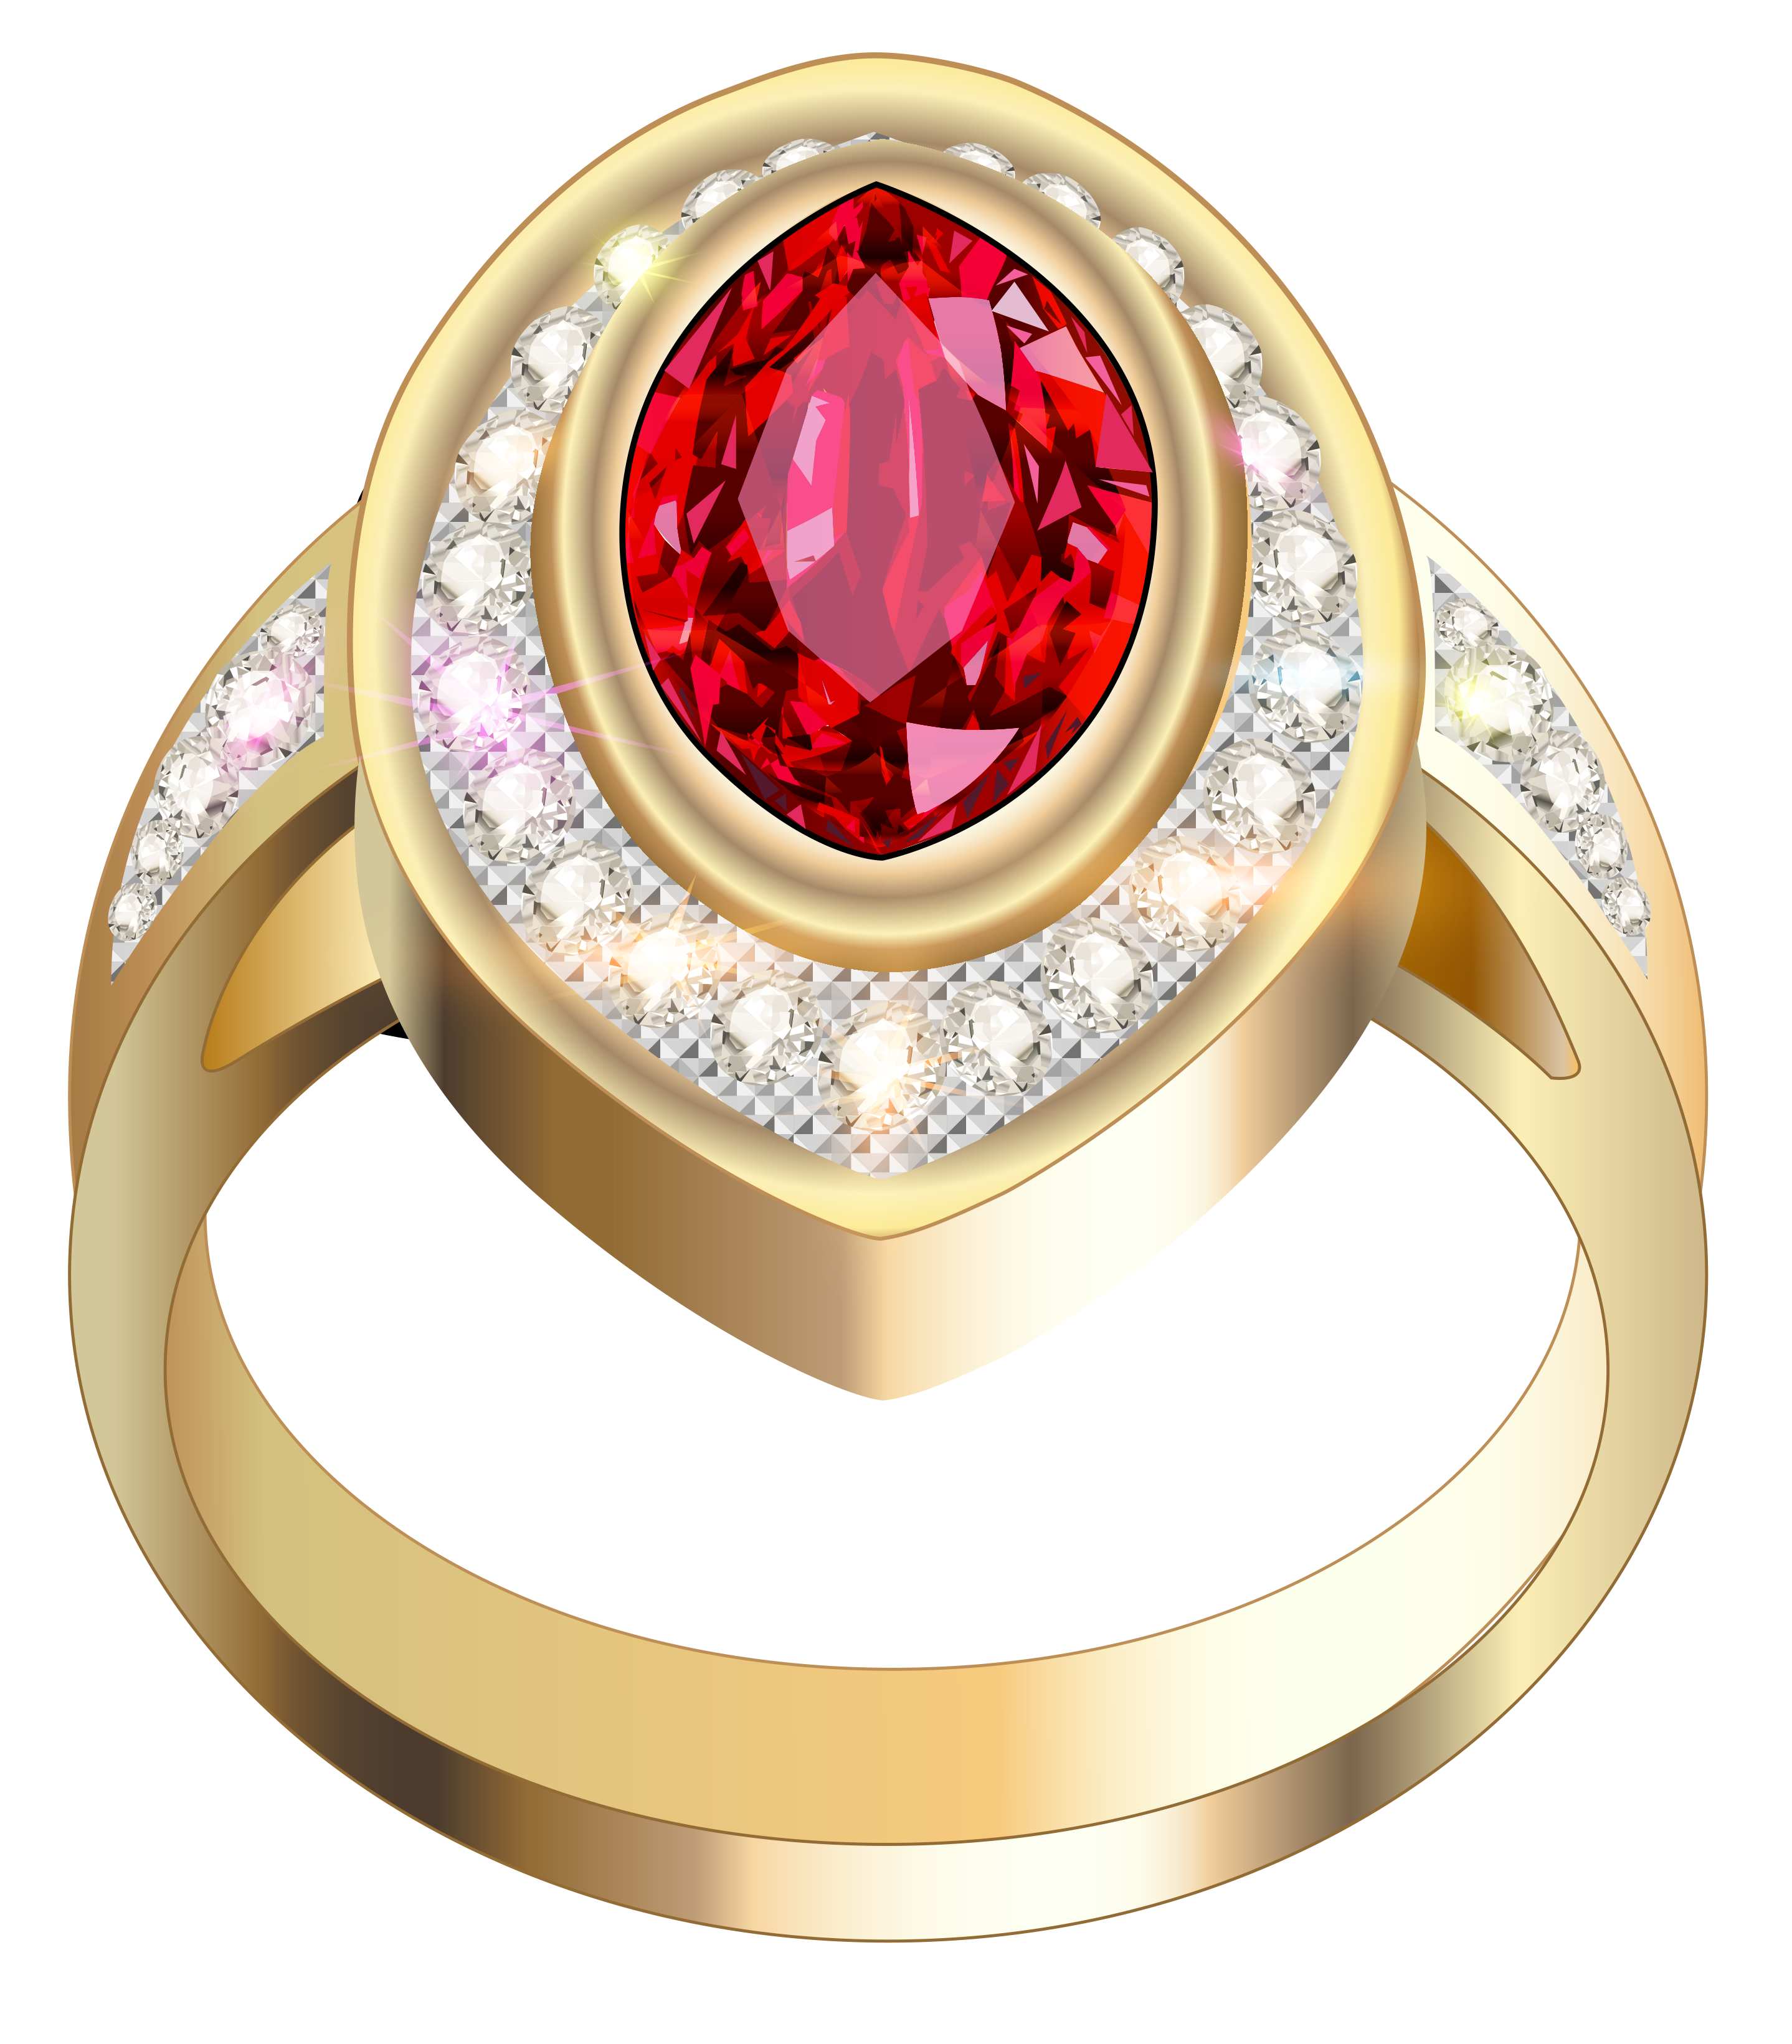 rings fine diamond photography ruby jewelry red oval stock ring